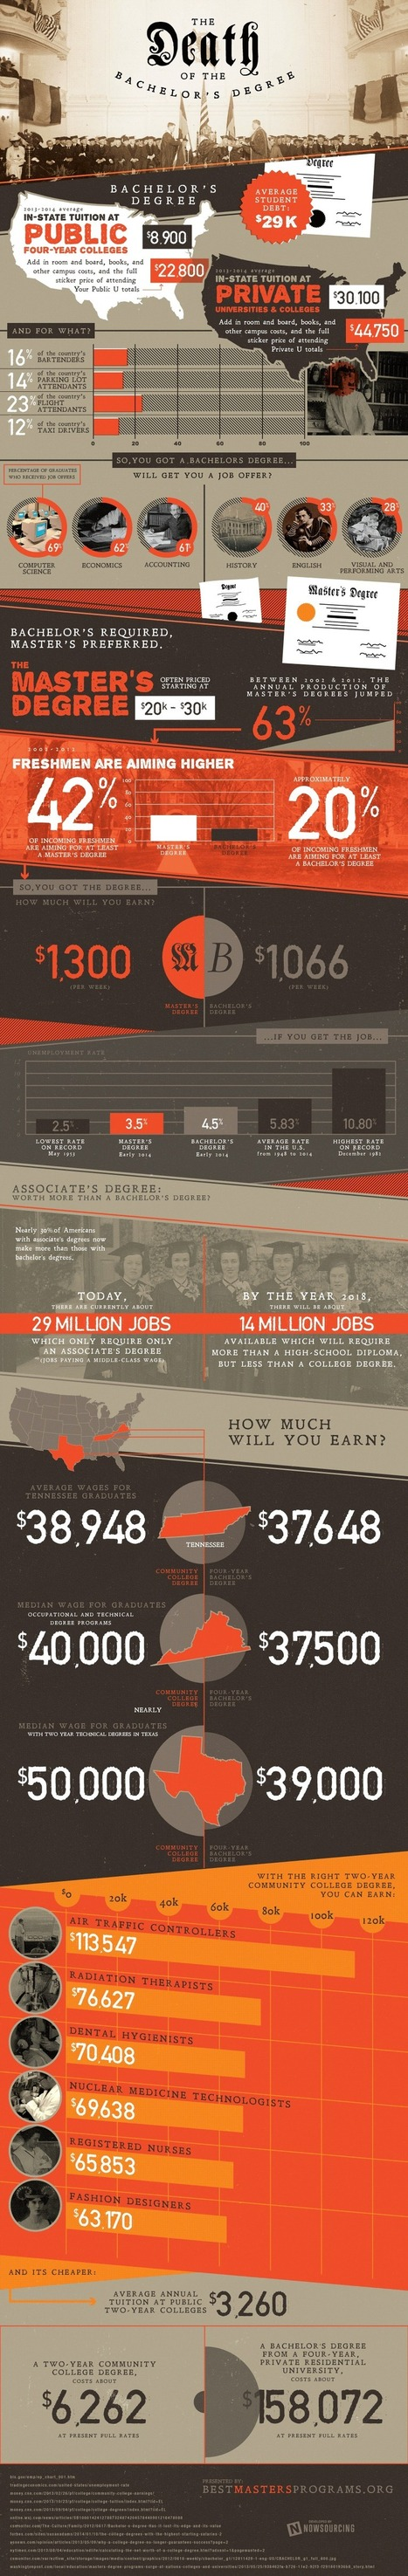 The Demise of the Bachelor's Degree [INFOGRAPHIC] | Business & Marketing | Scoop.it